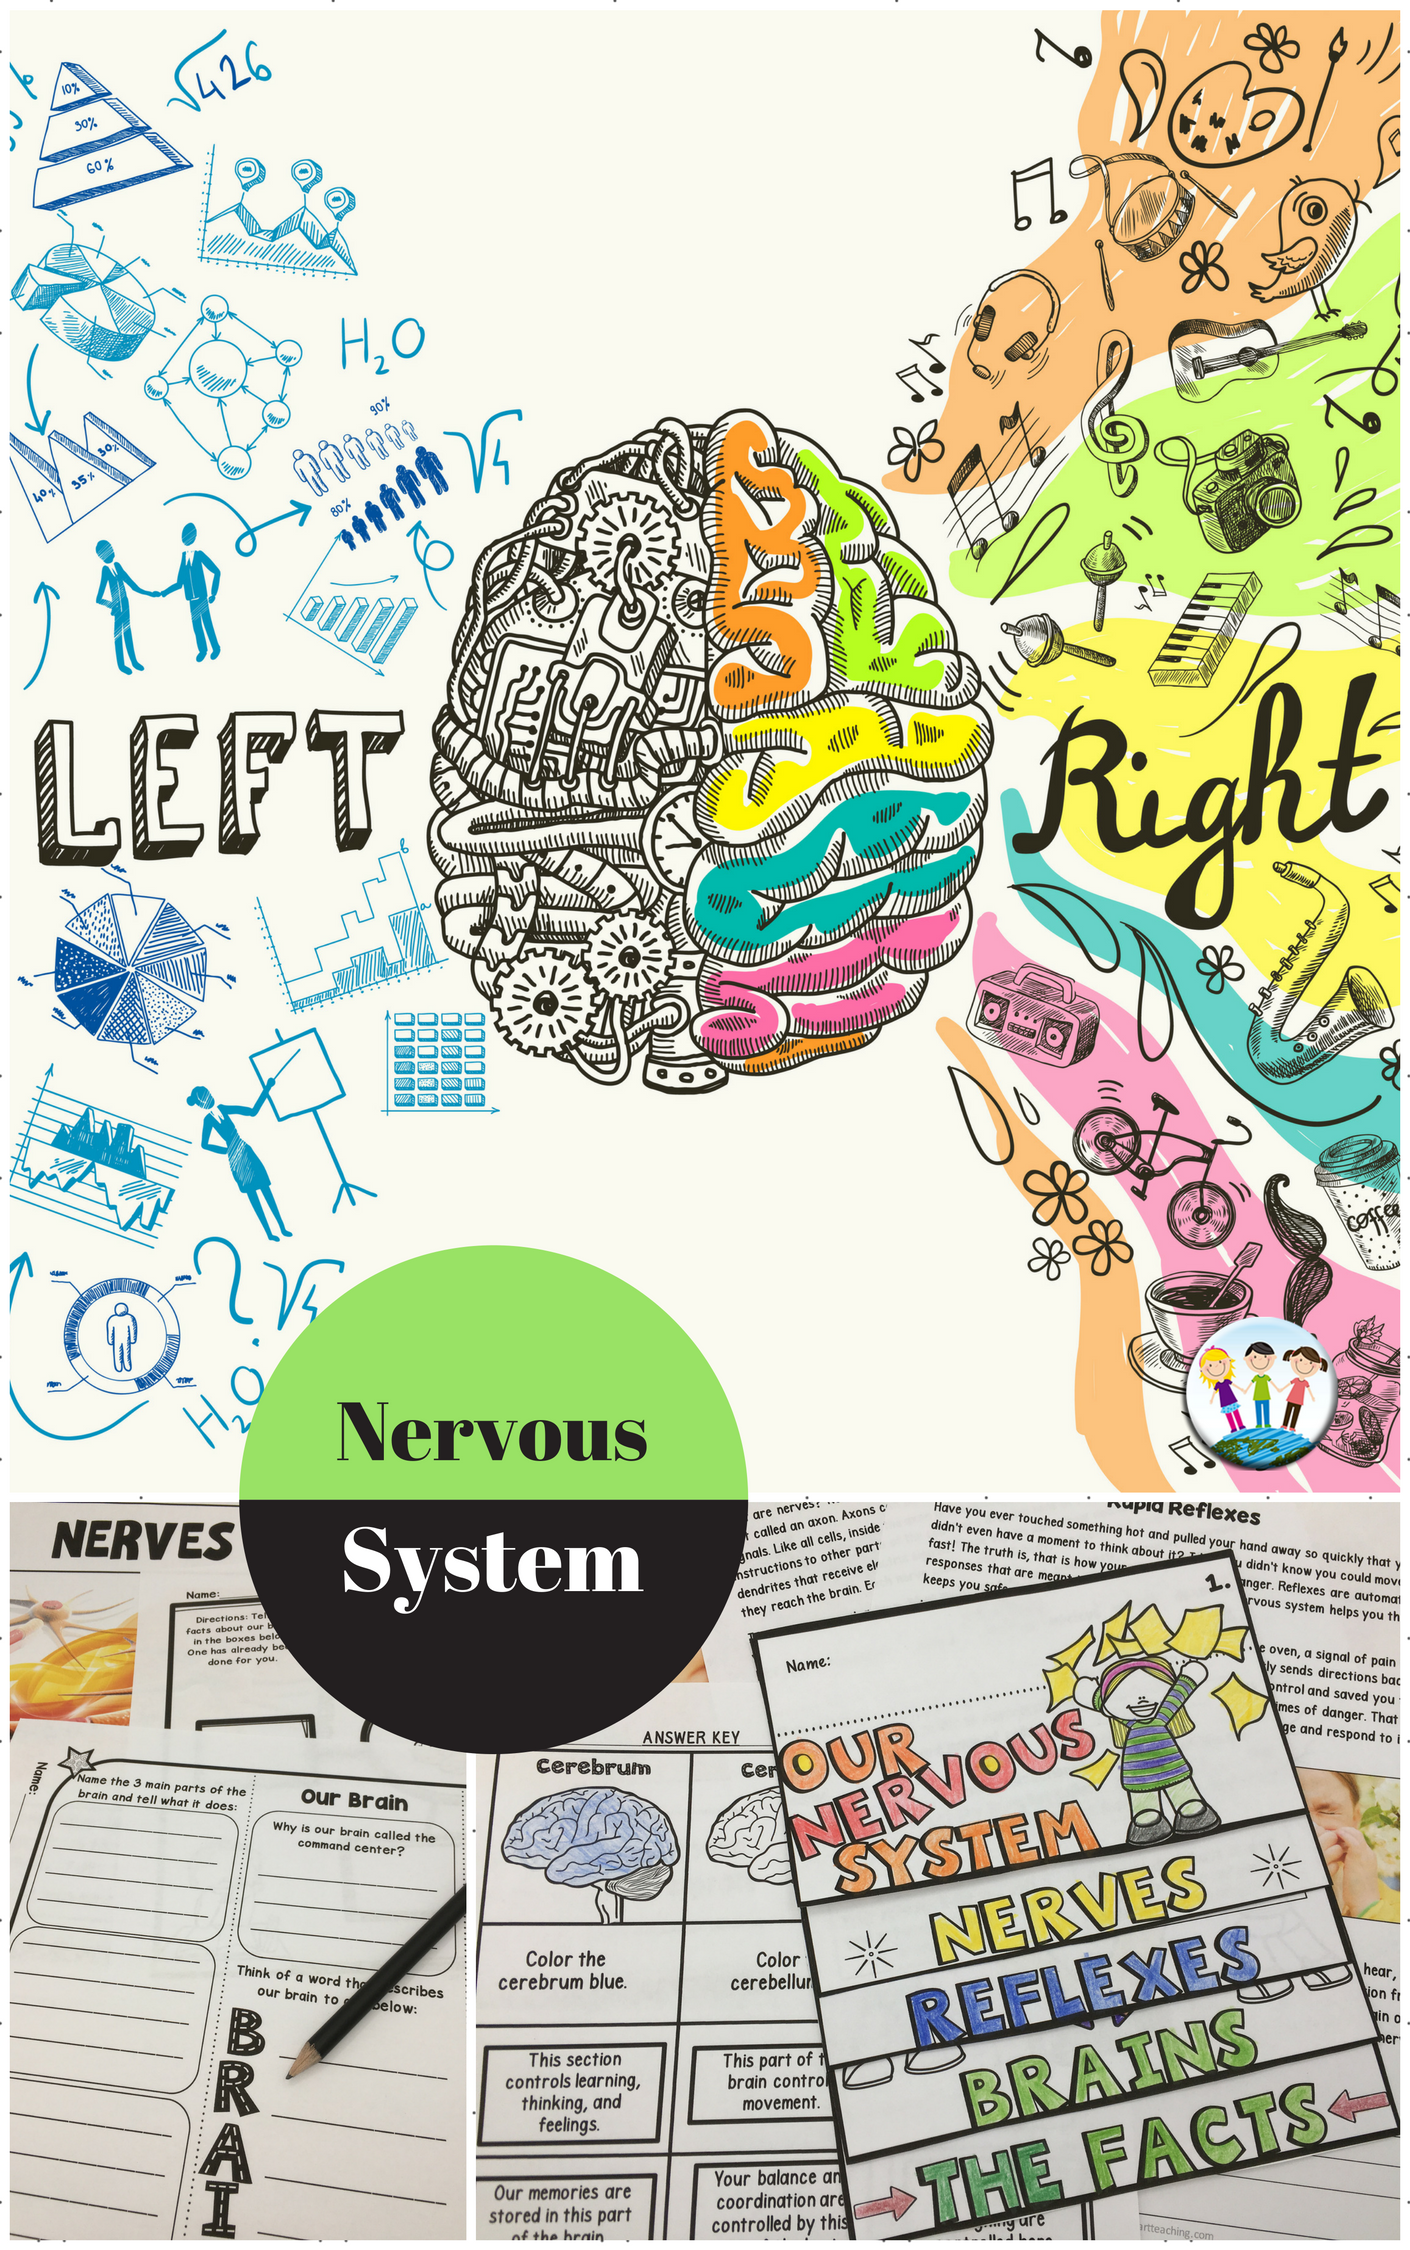 Human Body Systems Nervous System